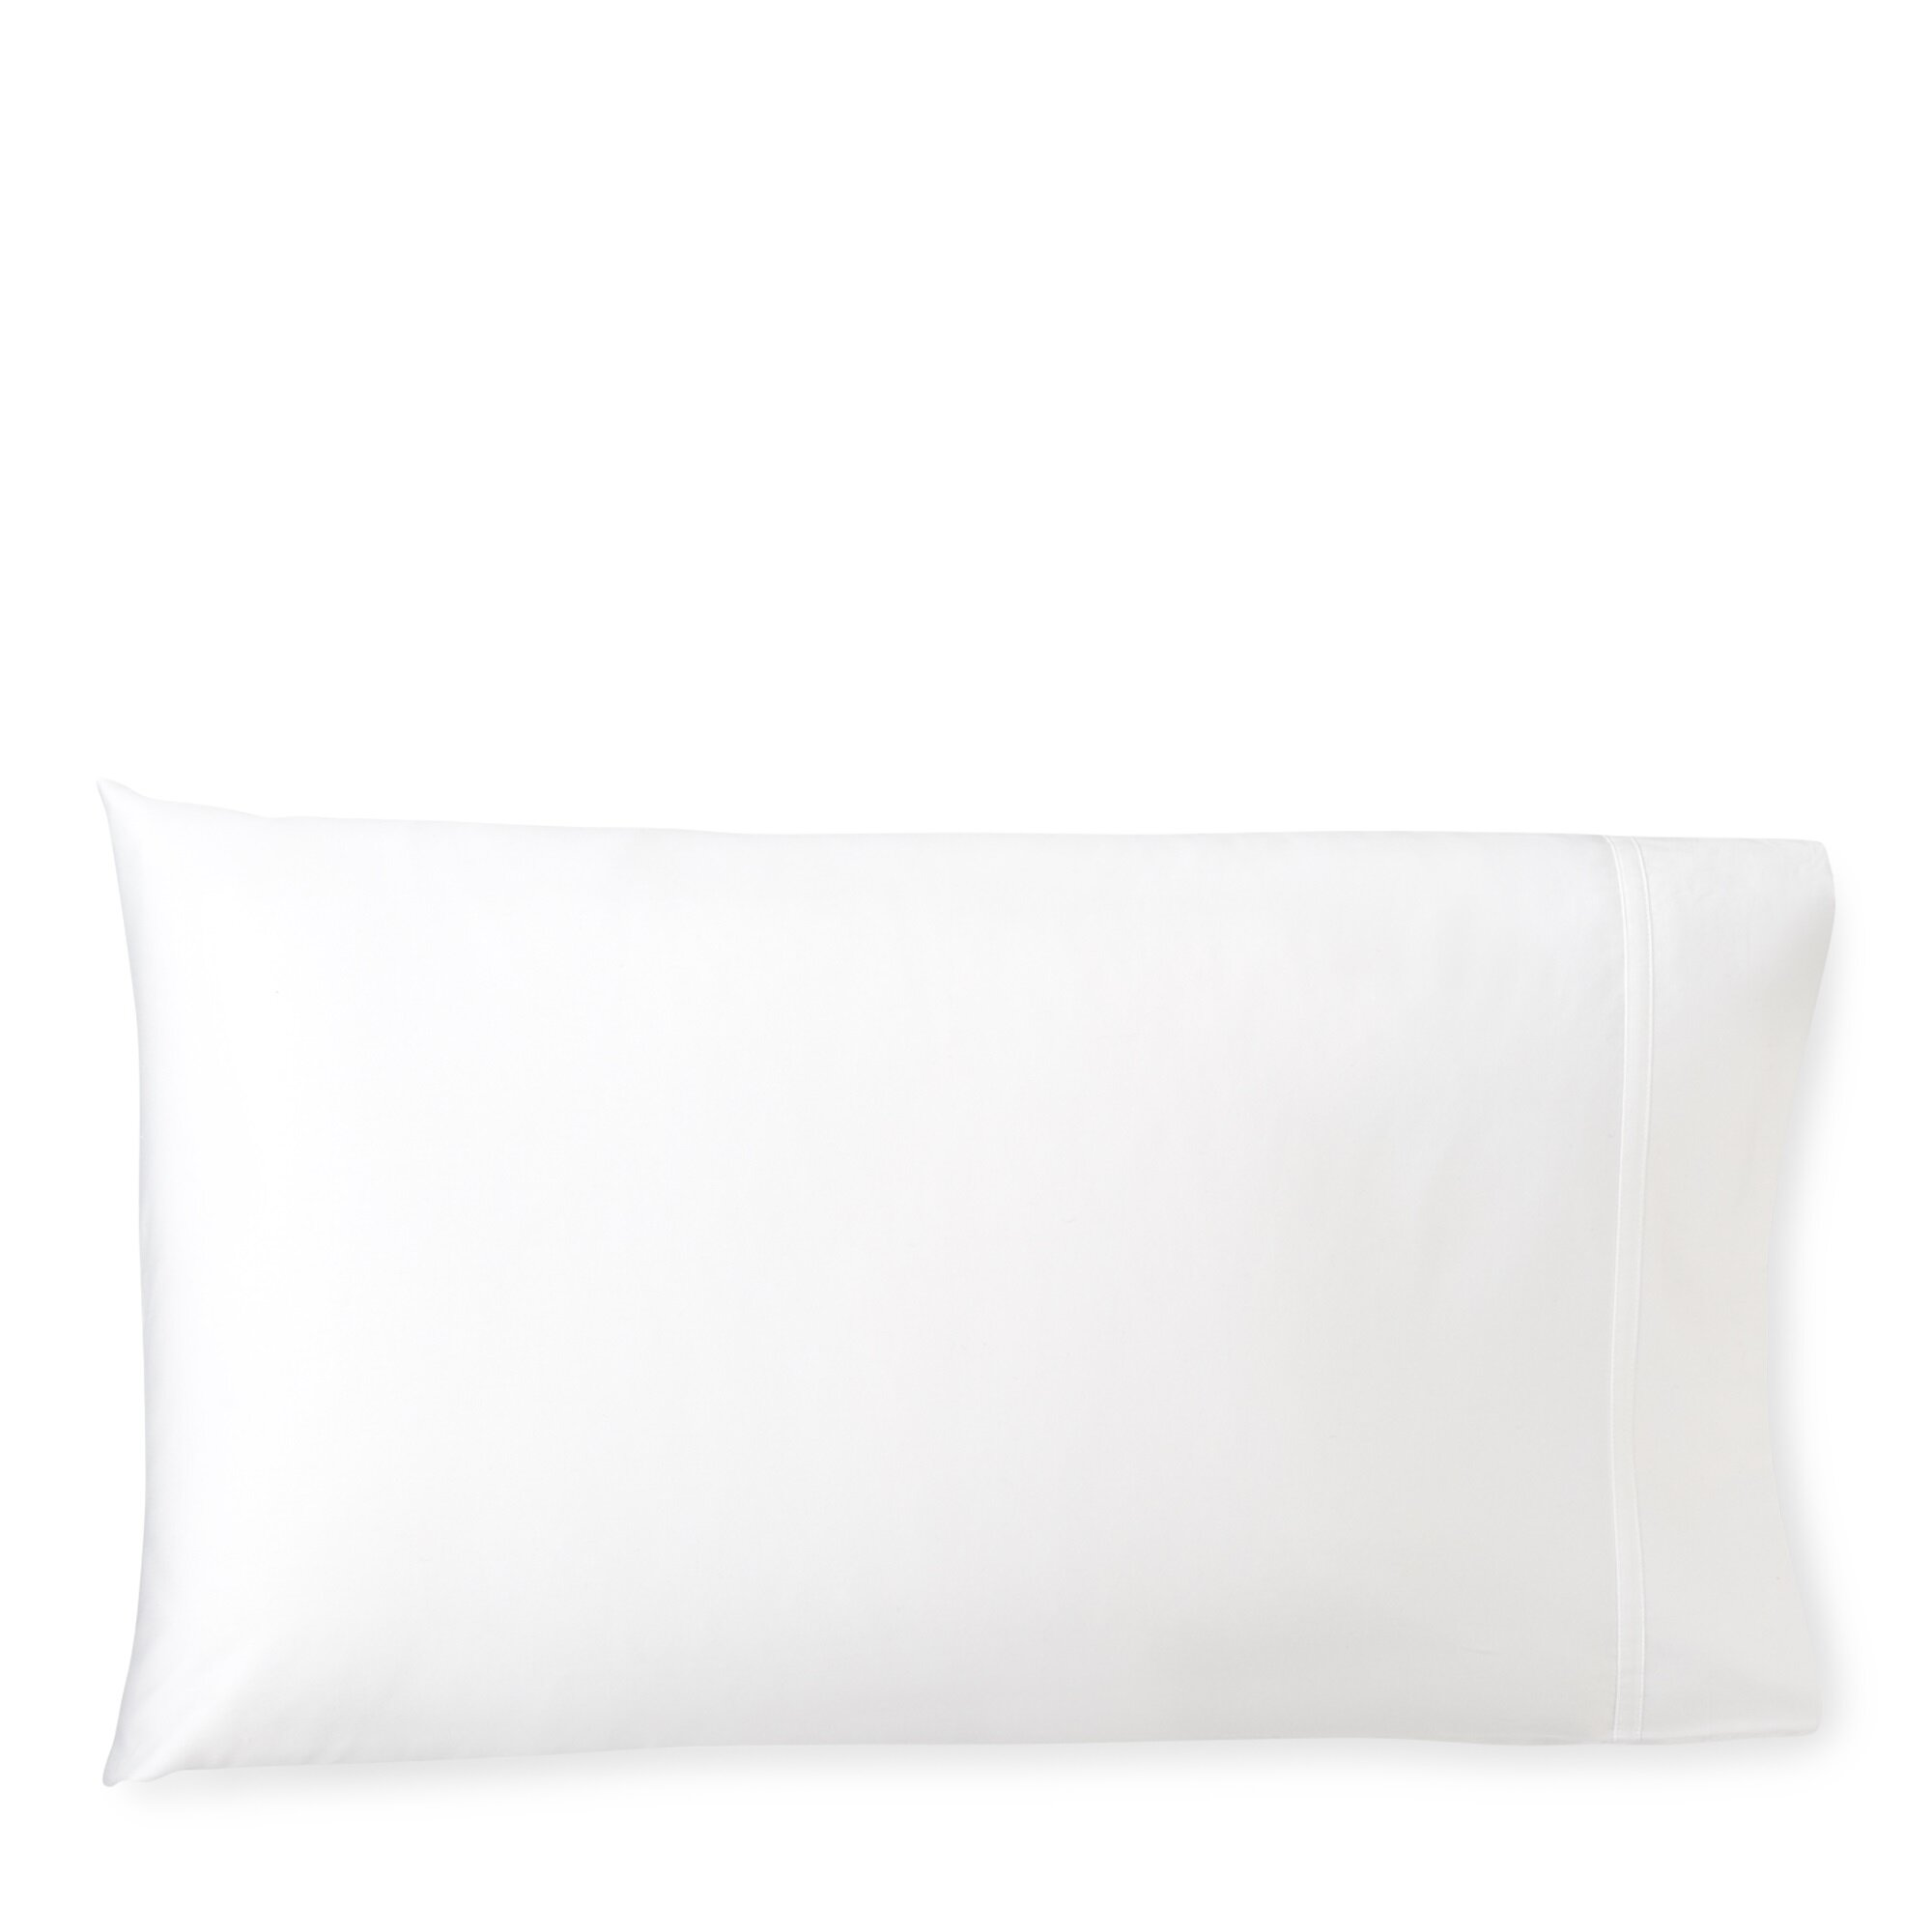 White Lauren Ralph Lauren Sheets Pillowcases You Ll Love In 2021 Wayfair